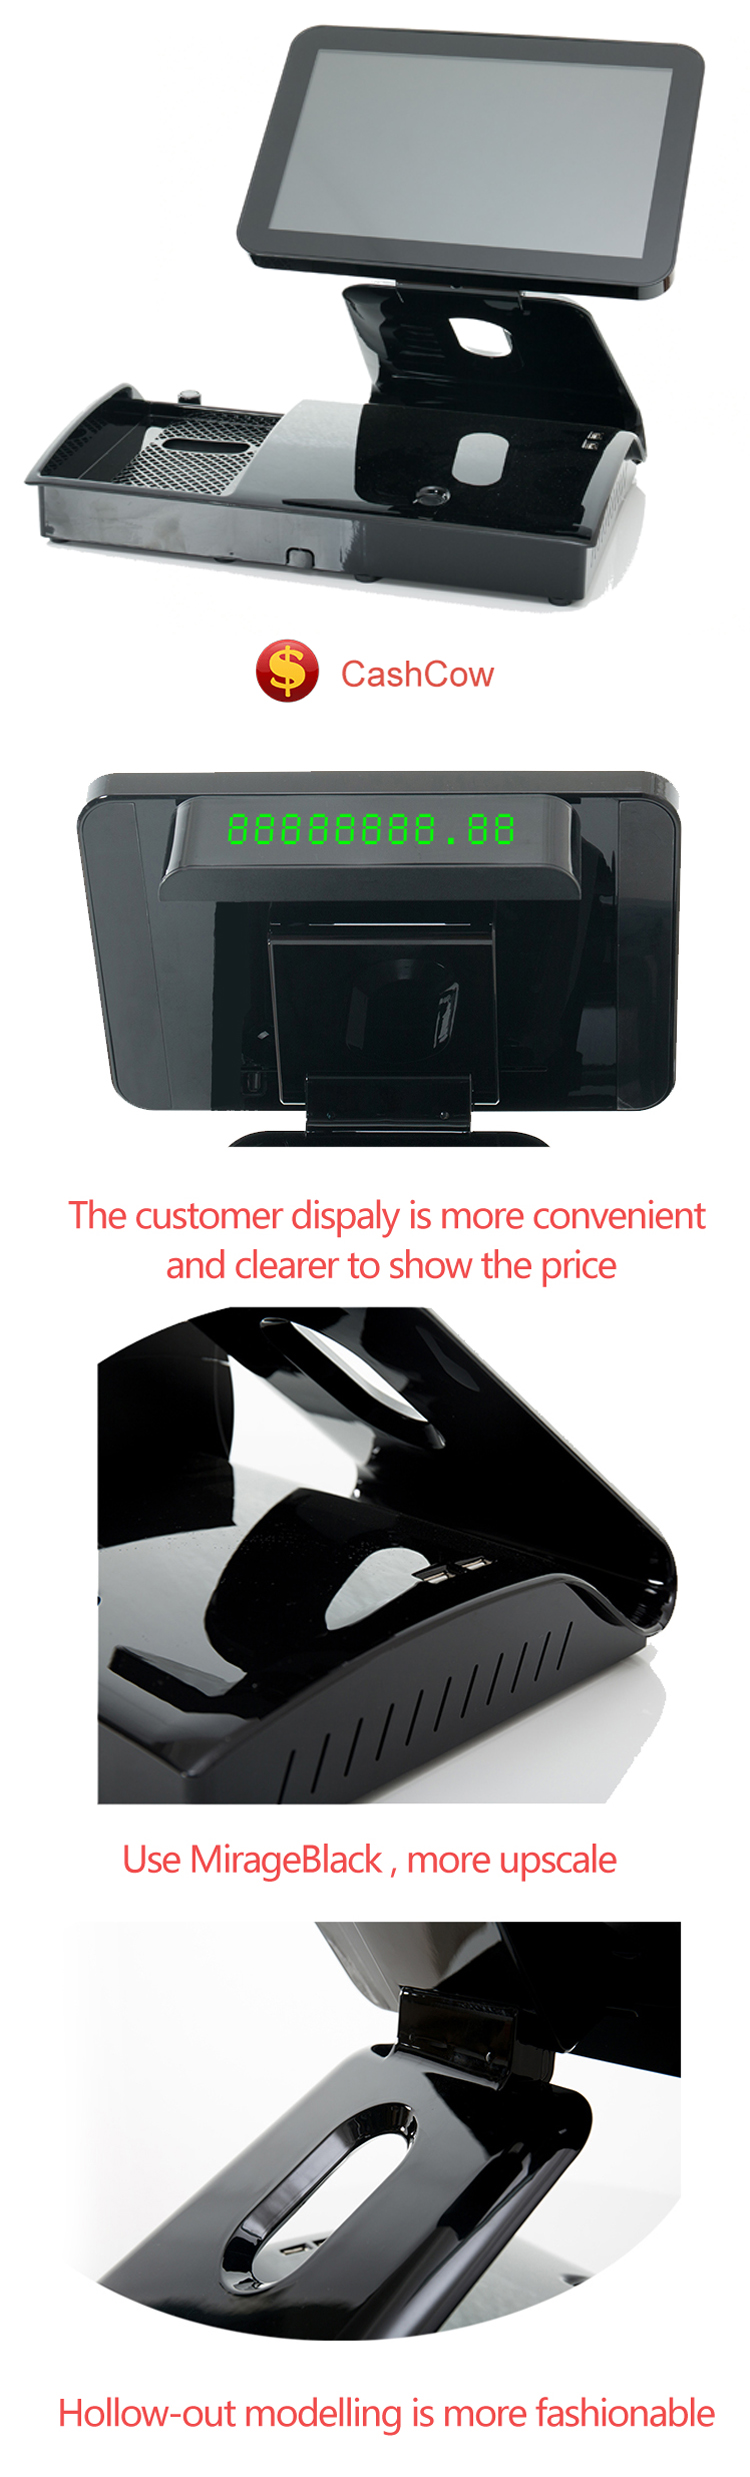 New model touchscreen pos system for restaurant